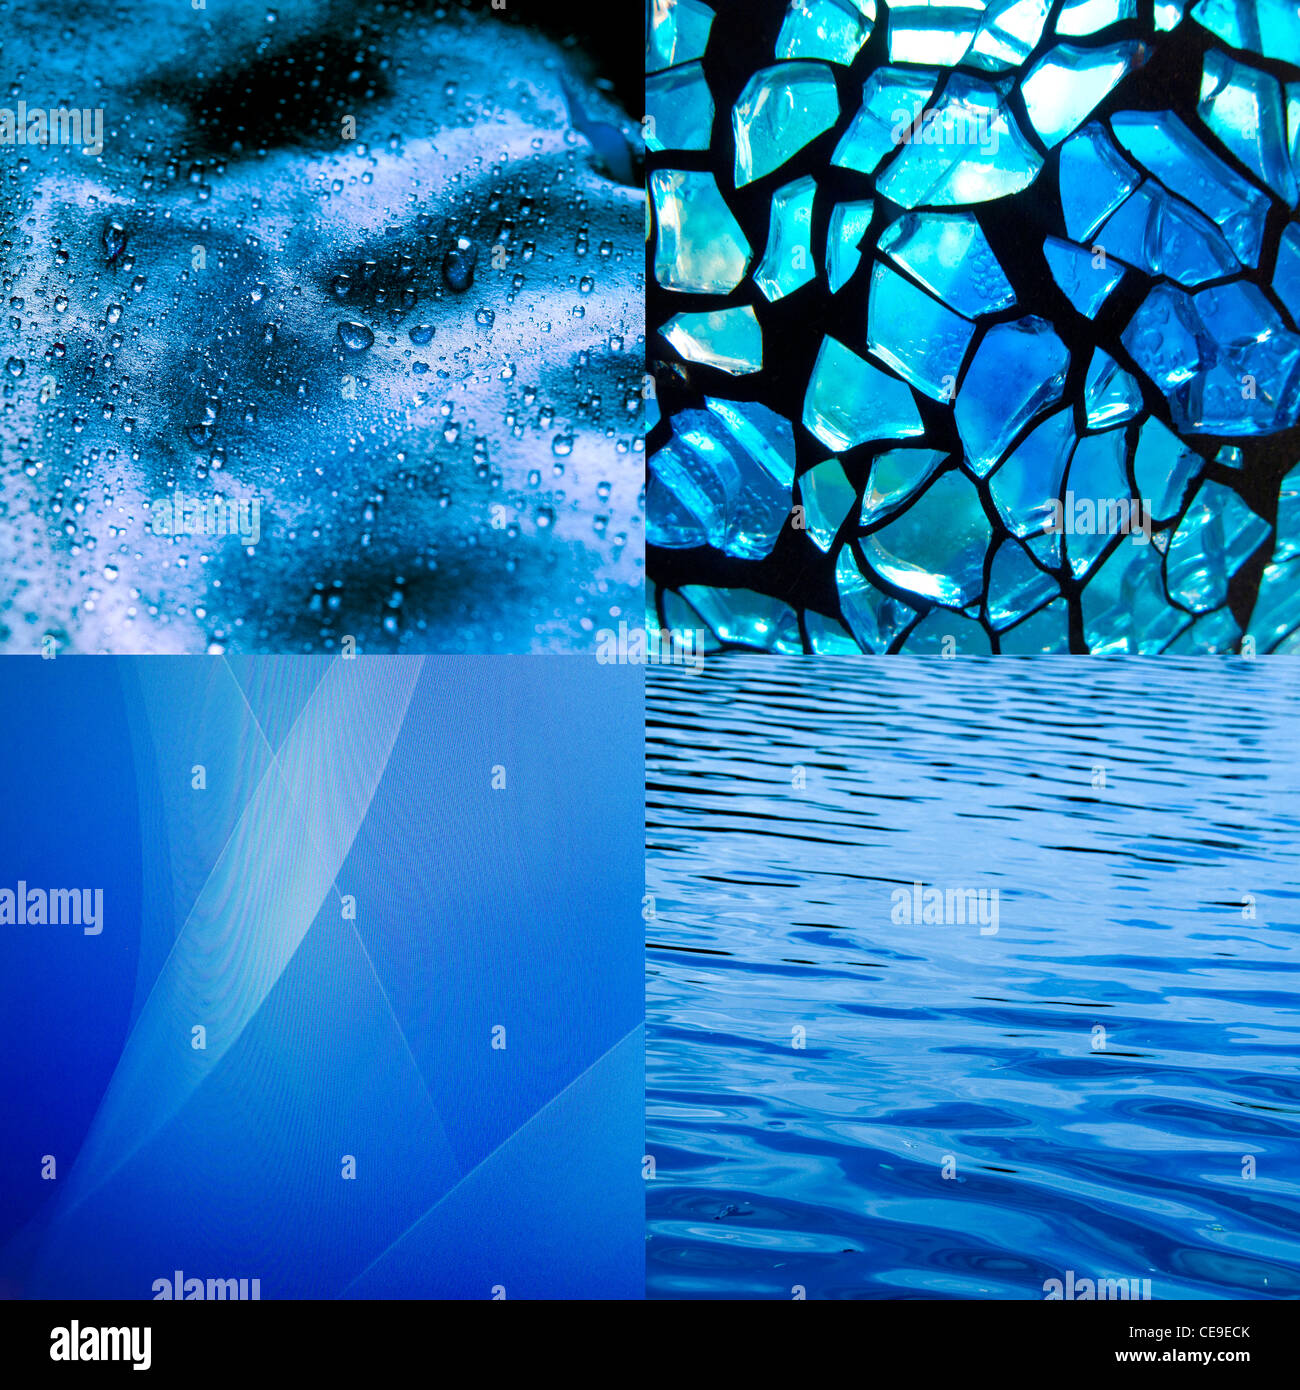 blue abstract texture backgrounds - Stock Image